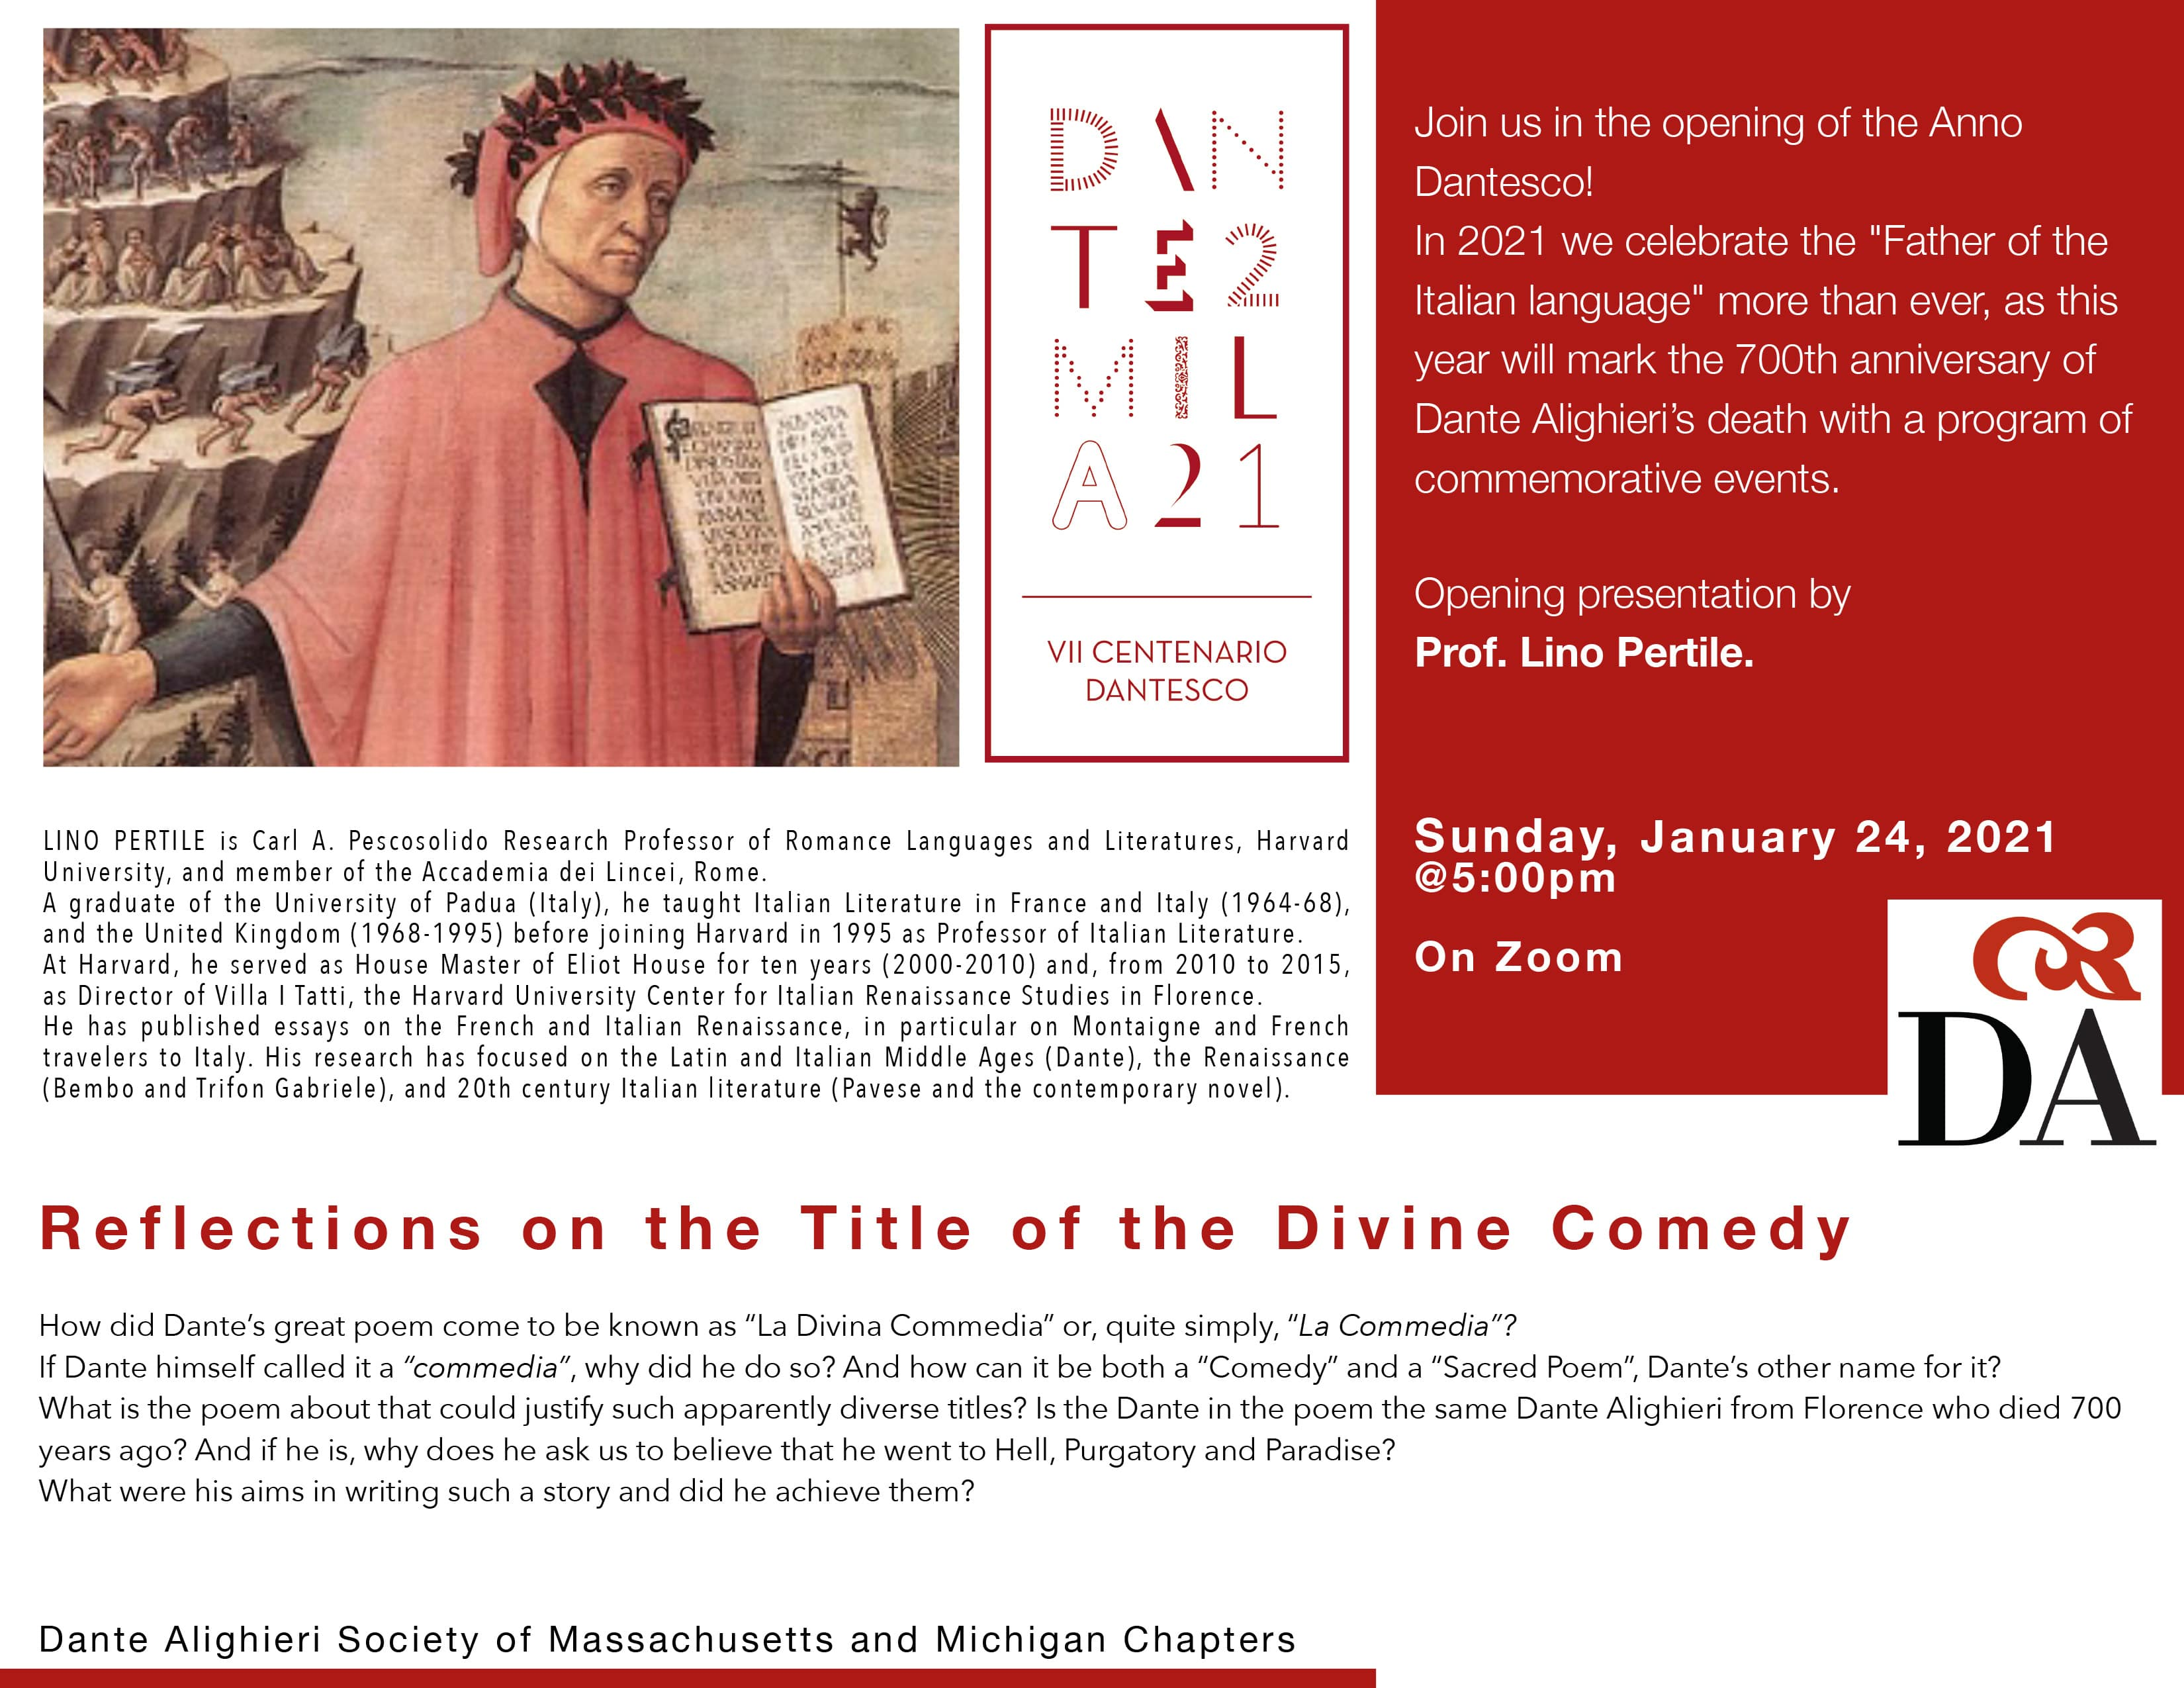 Reflections on the Title of the Divine Comedy